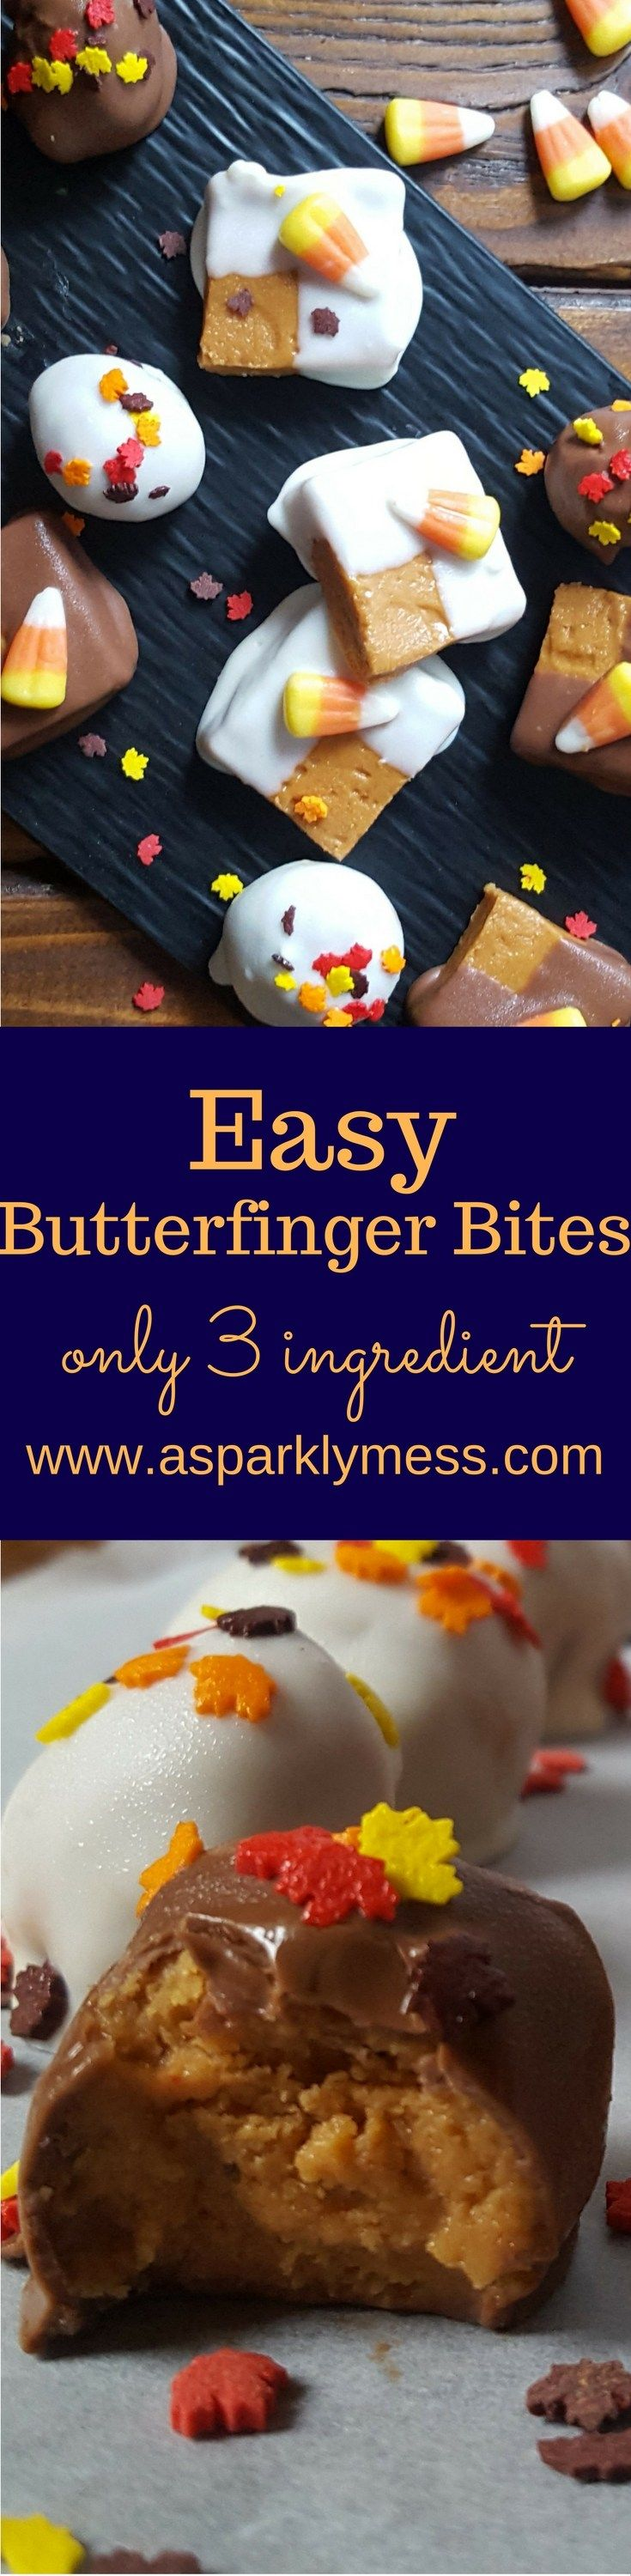 These Easy Butterfinger Bites are truly easy to make. And sooo delicious! The Butterfinger flavor is perfect, although they lack the crunch from the original candy bar. I'm not complaining. I had to bring most of these to work to avoid excessive pigging out. Truly addictive fudge like texture. I can barley believe that they are made with just peanut butter and candy corn